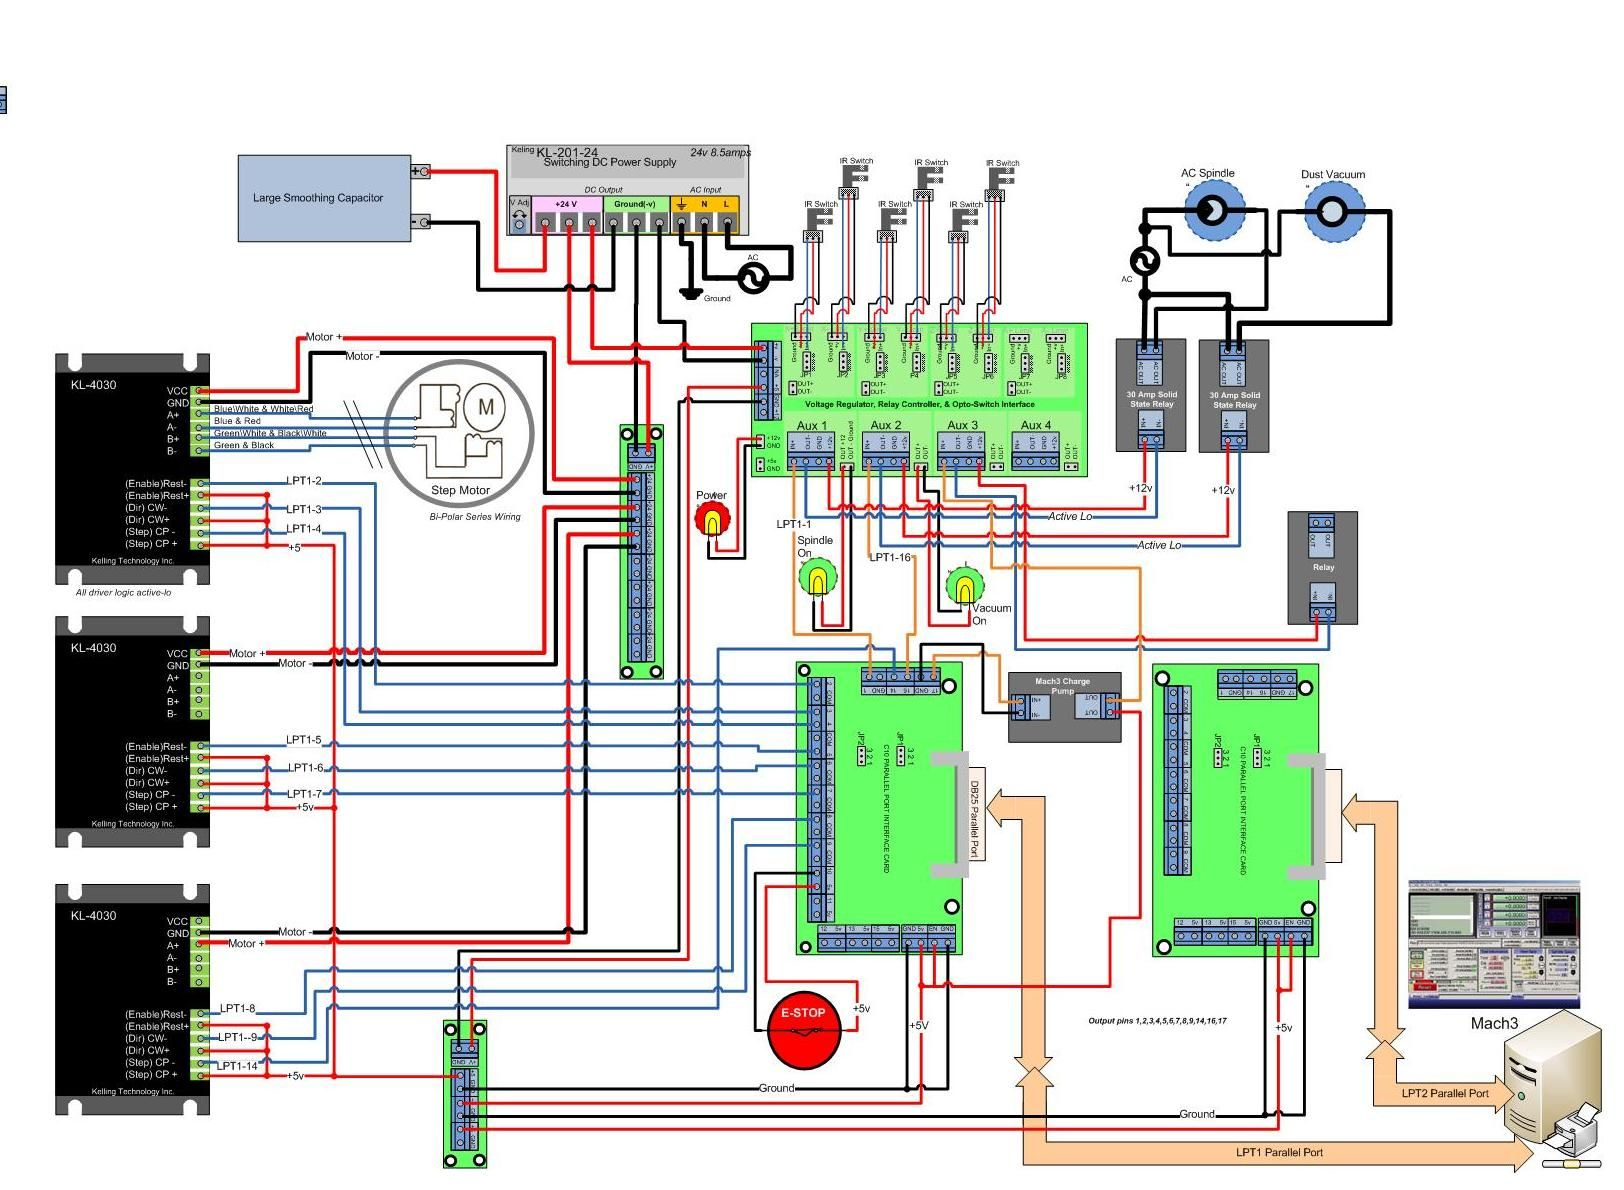 CNC Wiring-Diagram | Diy cnc router, Cnc controller, Cnc machine projects | Wood Router Wiring Diagram |  | Pinterest